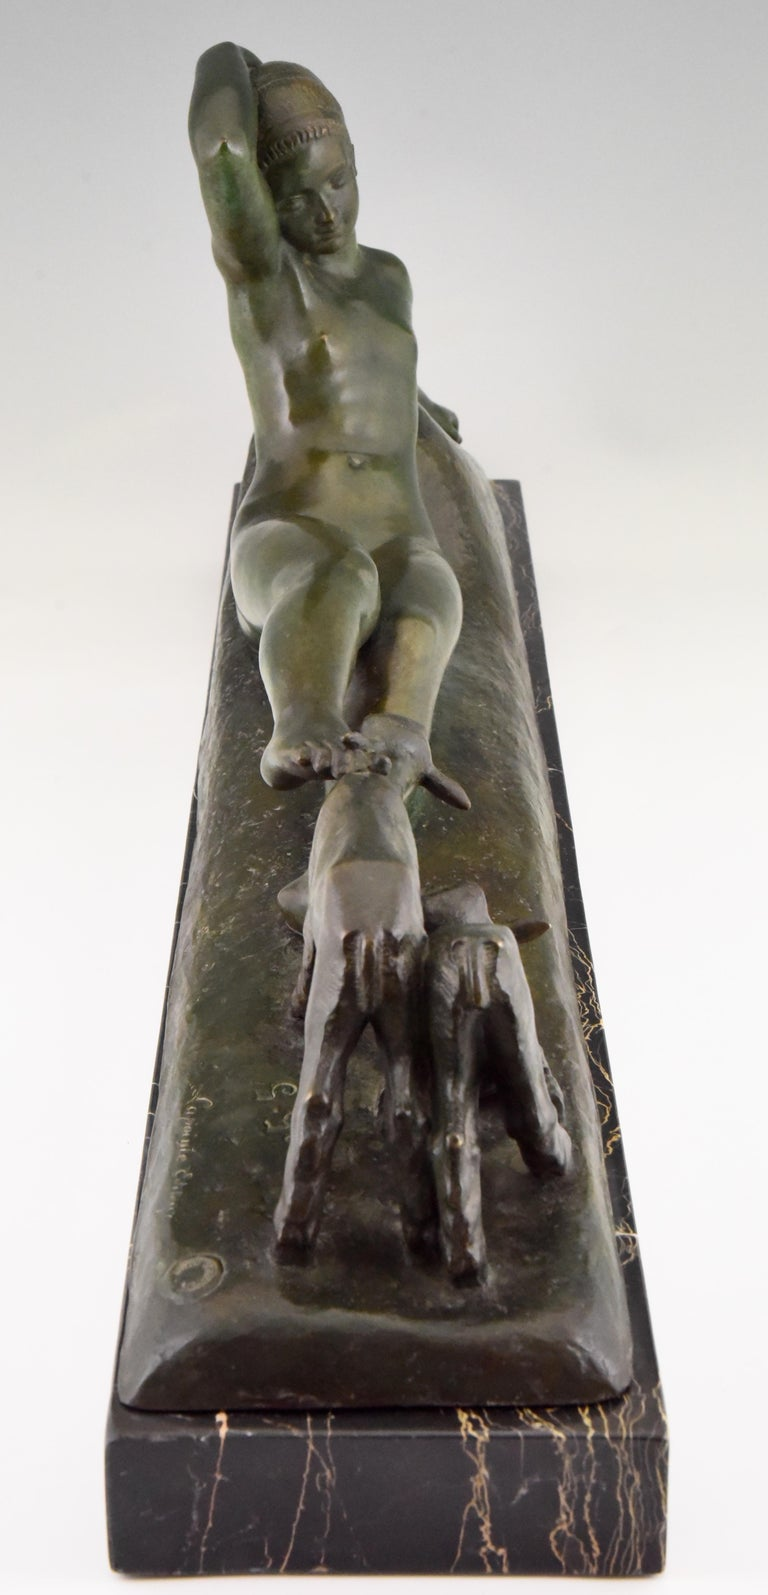 Patinated Art Deco Bronze Sculpture Reclining Nude with Goats Georges Gori, France, 1930 For Sale